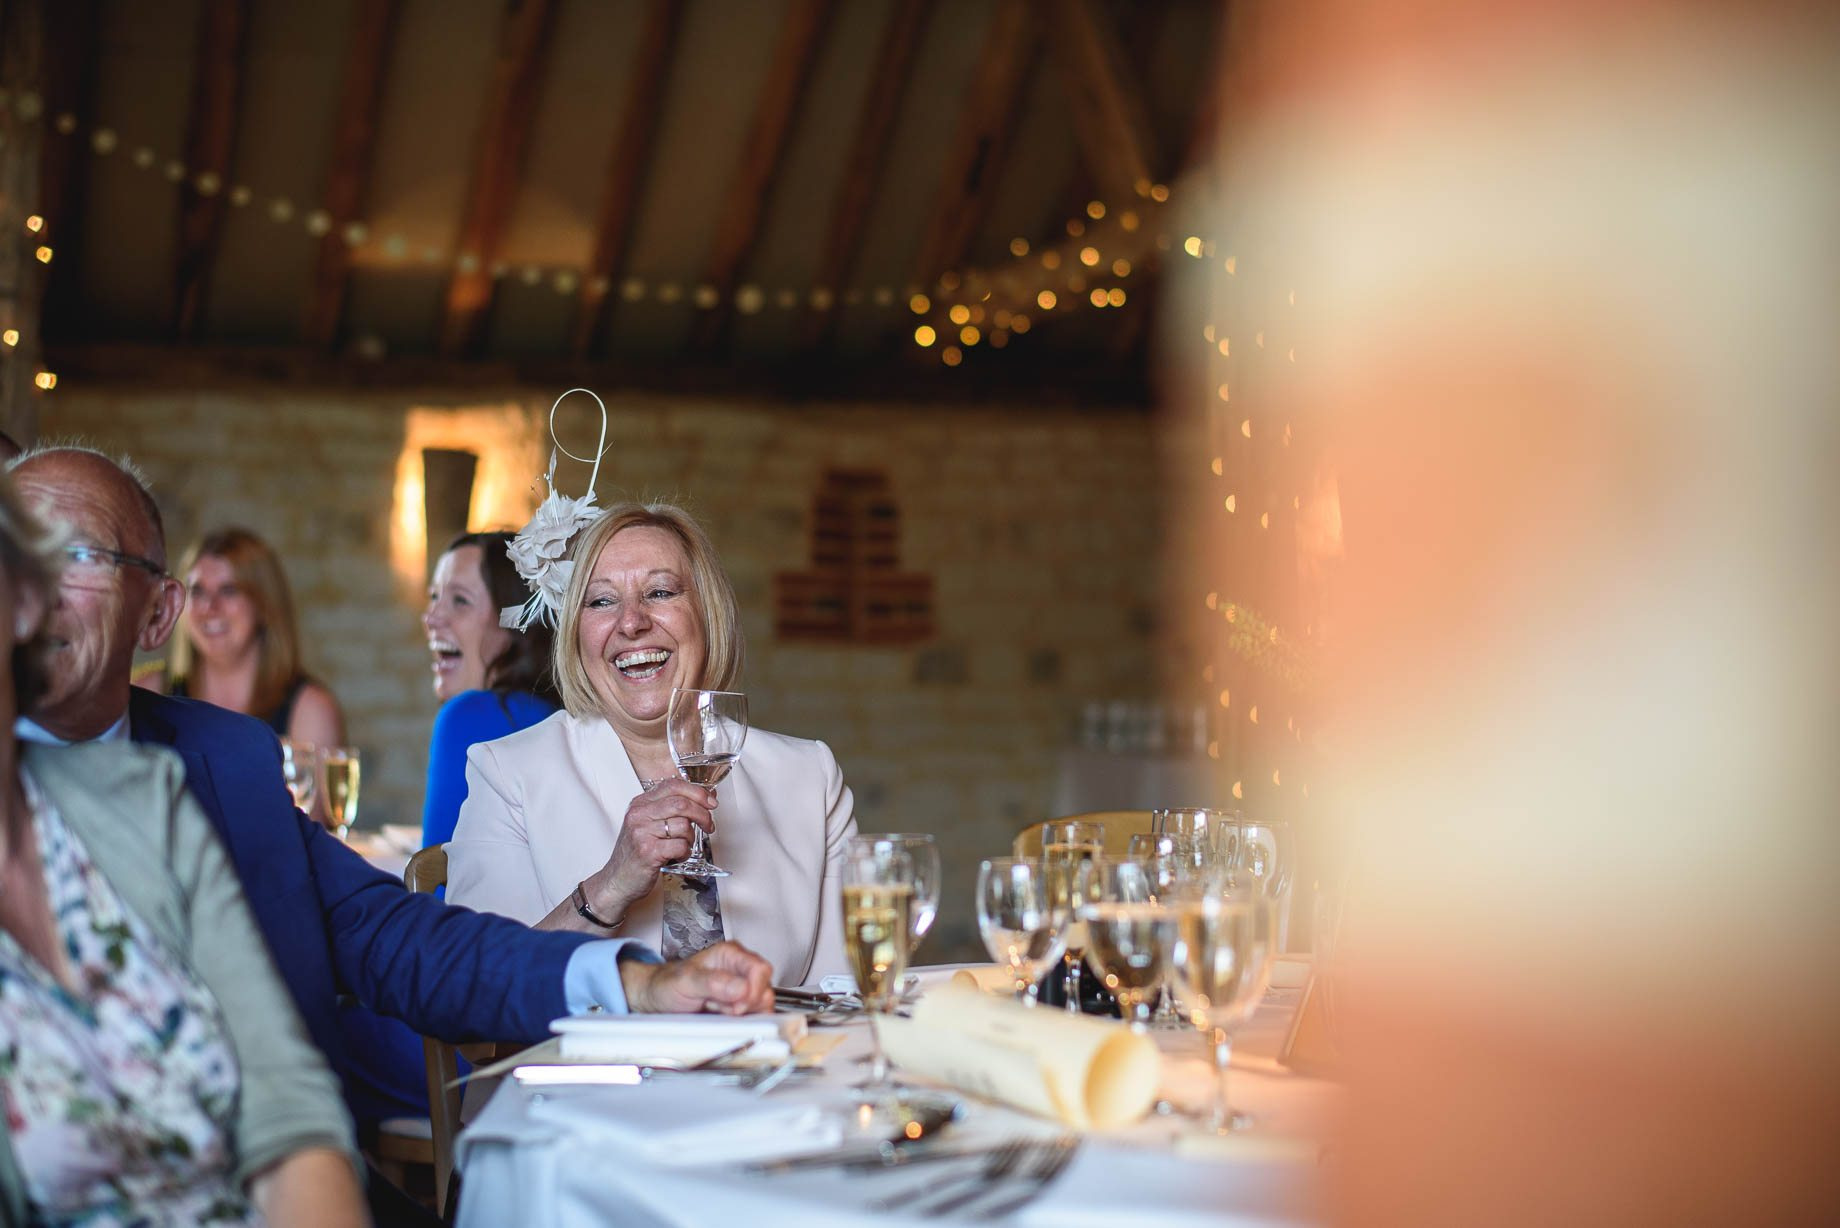 Bury Court Barn wedding photography by Guy Collier - Jo and Jamie (109 of 160)